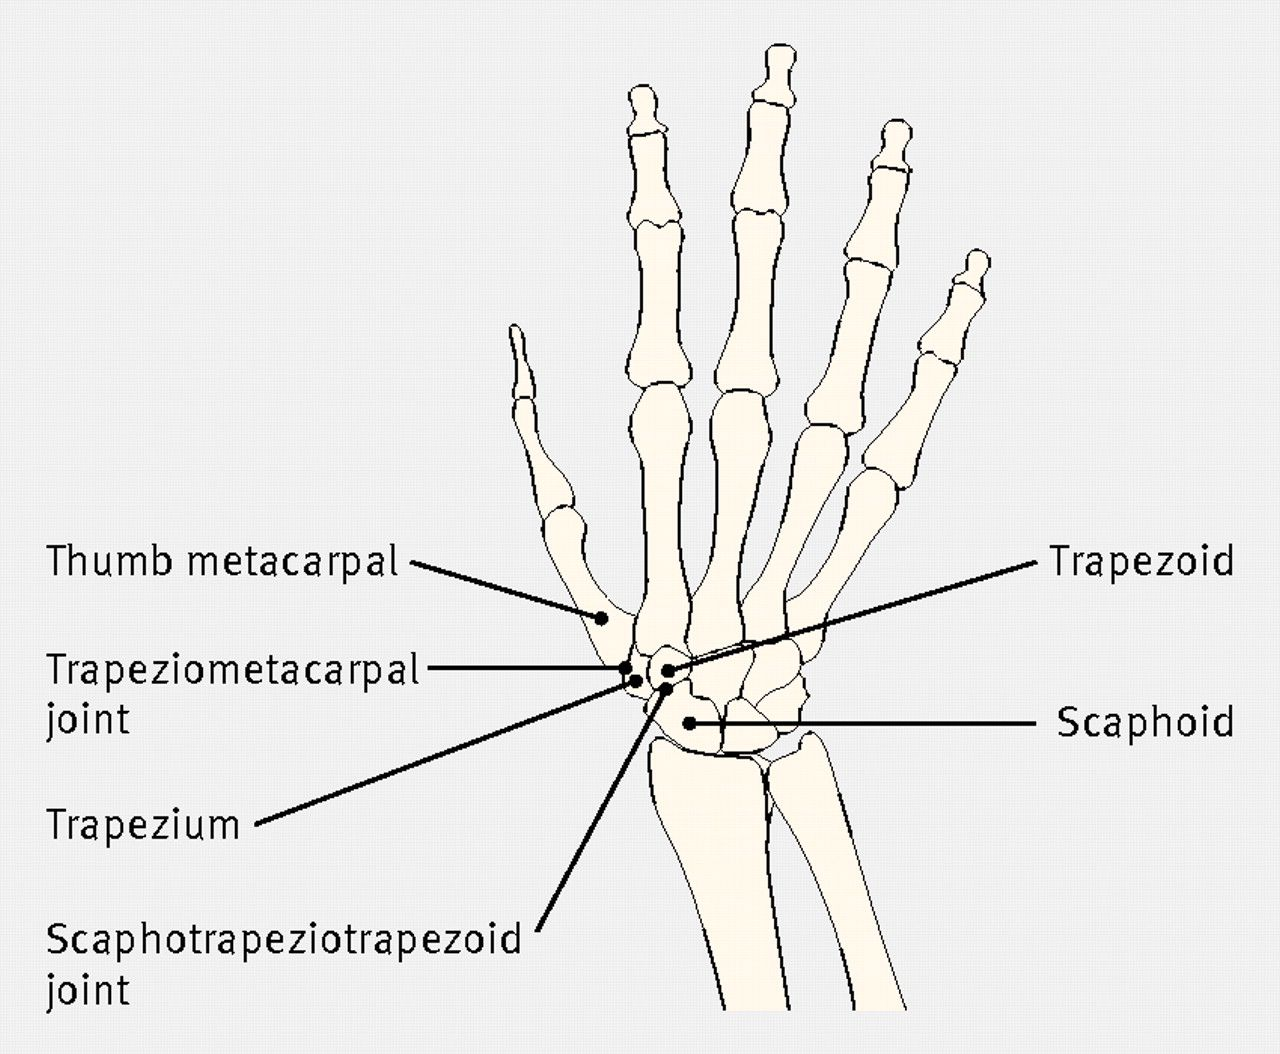 hight resolution of diagram of the bones of the hand and carpus showing the trapeziometacarpal and scaphotrapeziotrapezoid joints where basal thumb arthritis occurs